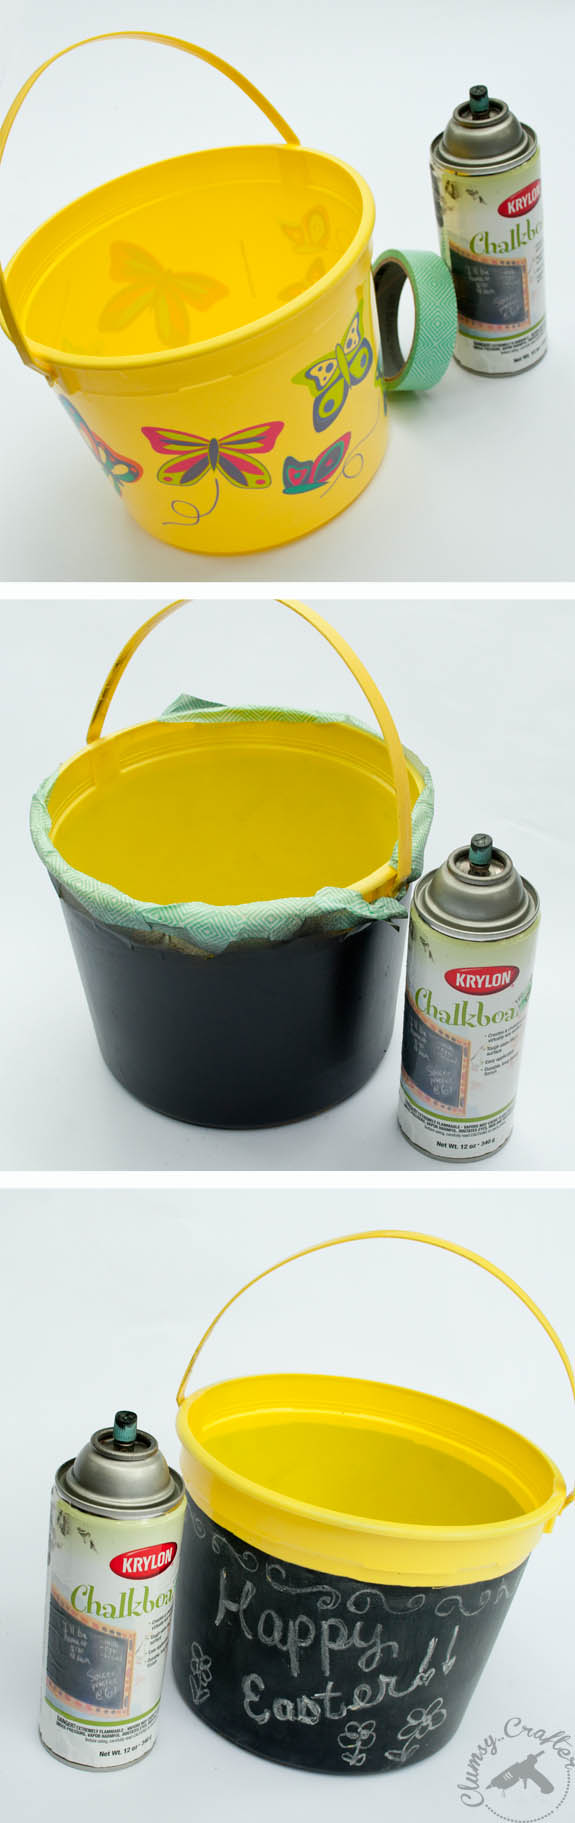 How to make a chalkboard easter basket